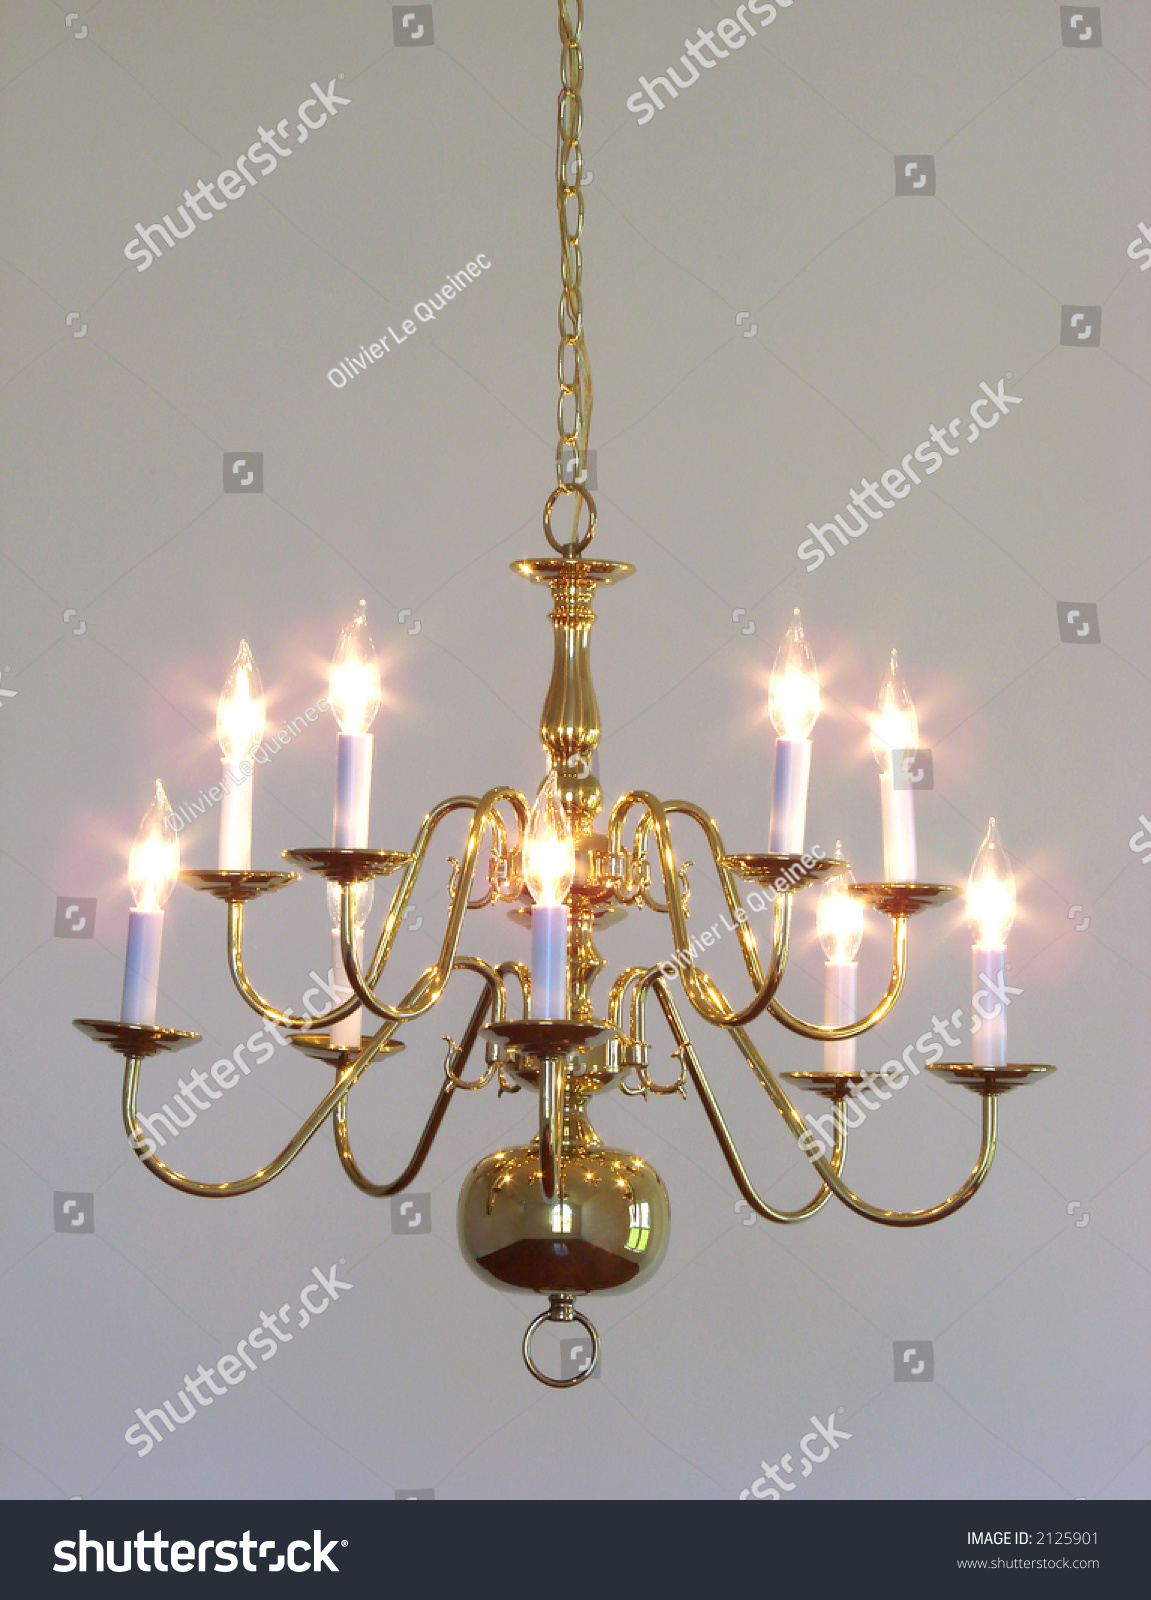 Traditional style home dining room brass stock photo 2125901 shutterstock - Popular chandelier styles ...